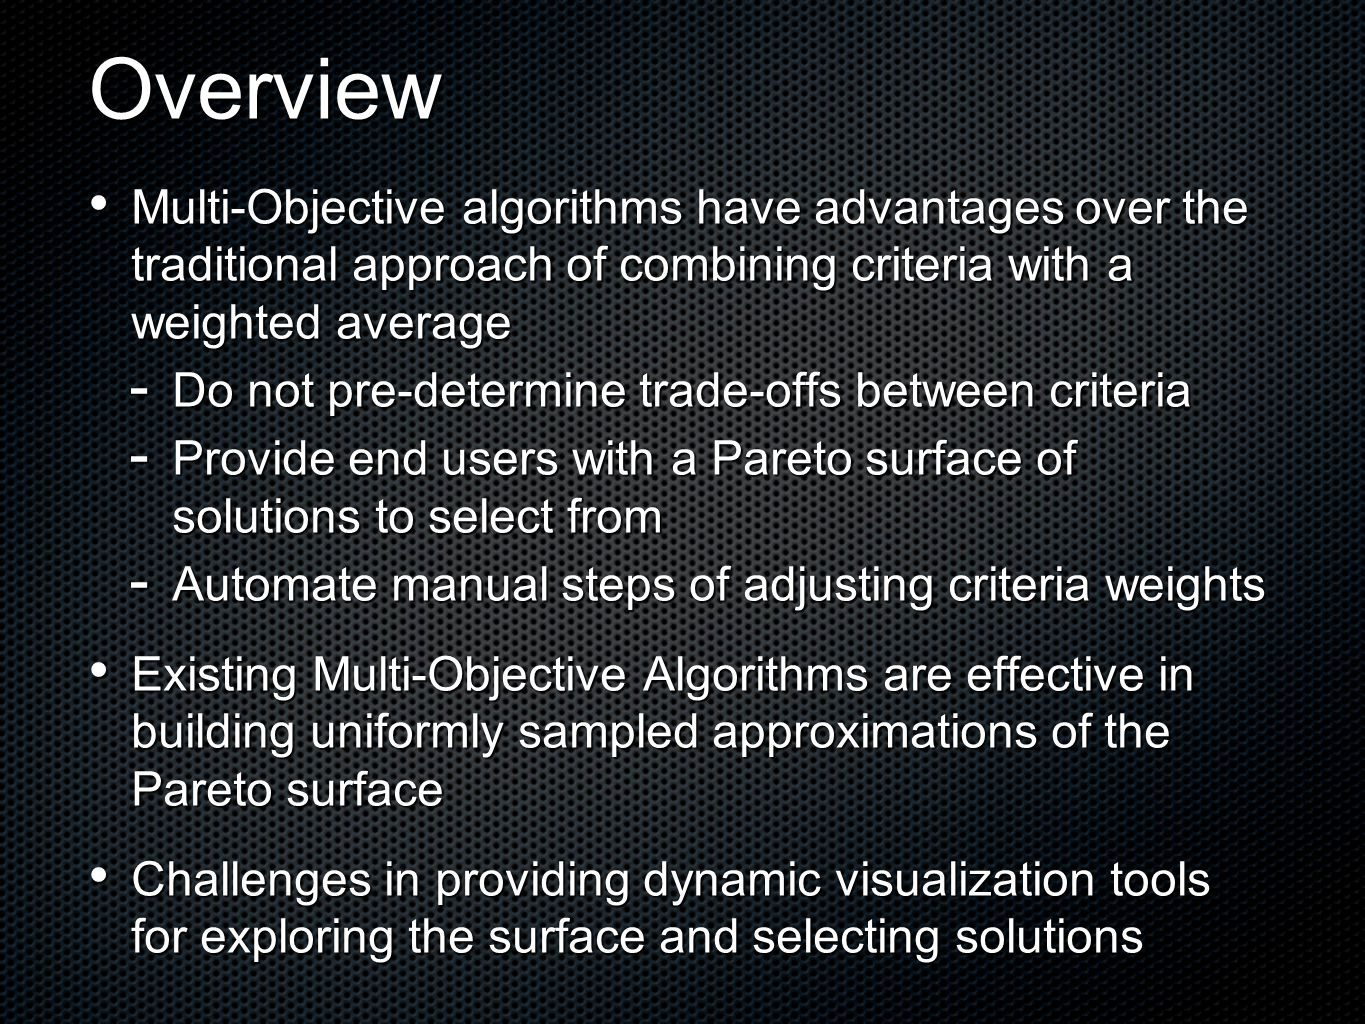 Overview Multi-Objective algorithms have advantages over the traditional approach of combining criteria with a weighted average Multi-Objective algorithms have advantages over the traditional approach of combining criteria with a weighted average  Do not pre-determine trade-offs between criteria  Provide end users with a Pareto surface of solutions to select from  Automate manual steps of adjusting criteria weights Existing Multi-Objective Algorithms are effective in building uniformly sampled approximations of the Pareto surface Existing Multi-Objective Algorithms are effective in building uniformly sampled approximations of the Pareto surface Challenges in providing dynamic visualization tools for exploring the surface and selecting solutions Challenges in providing dynamic visualization tools for exploring the surface and selecting solutions